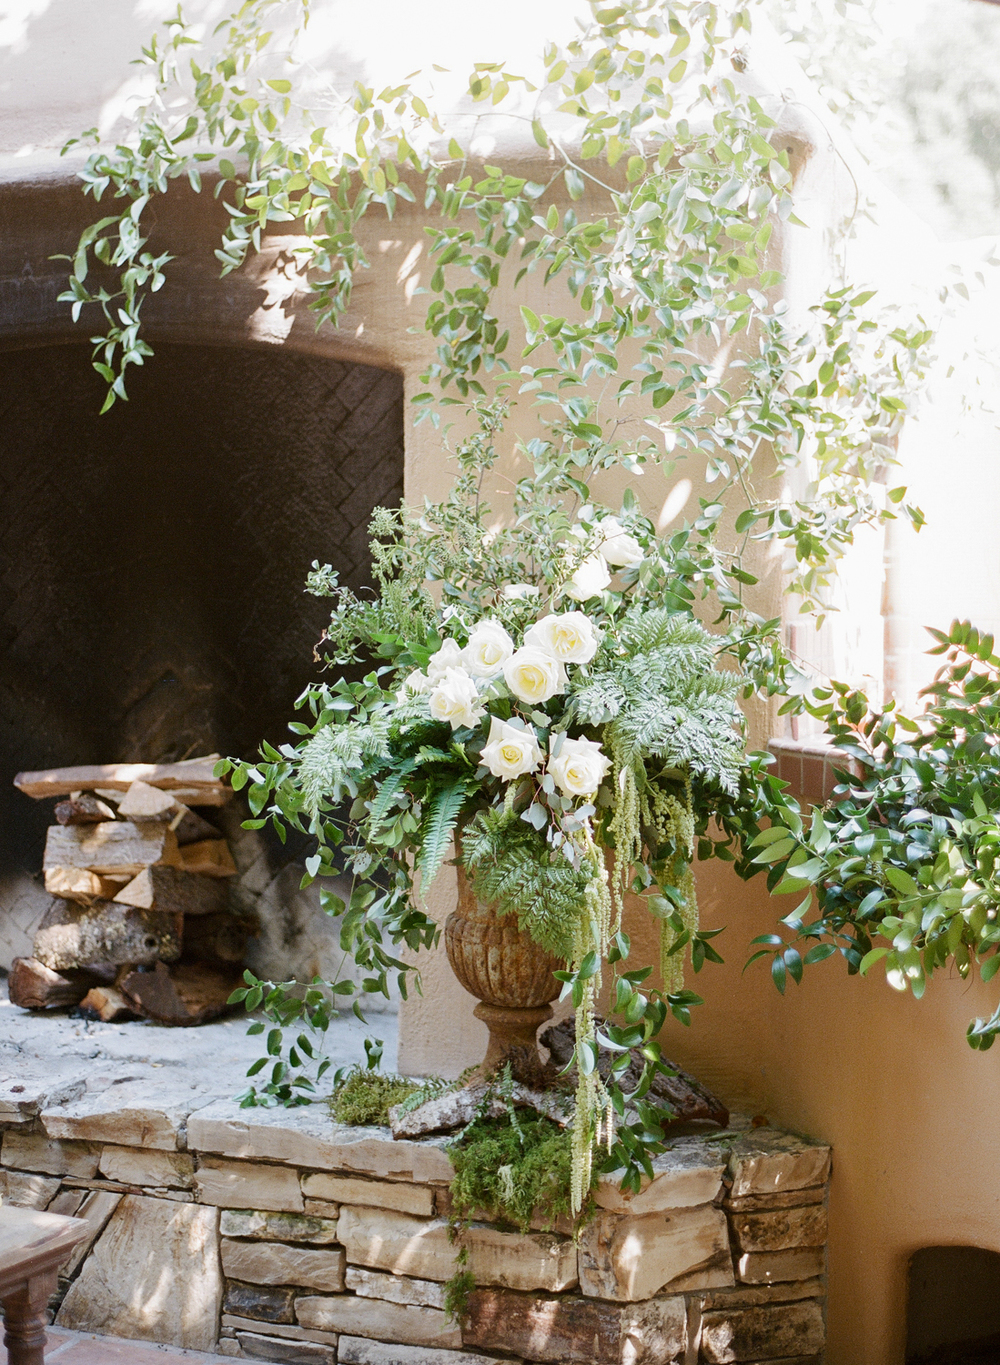 A terra cotta vase spills over with ferns, moss foliage, and white roses next to a fireplace in the reception courtyard; photo by Sylvie Gil